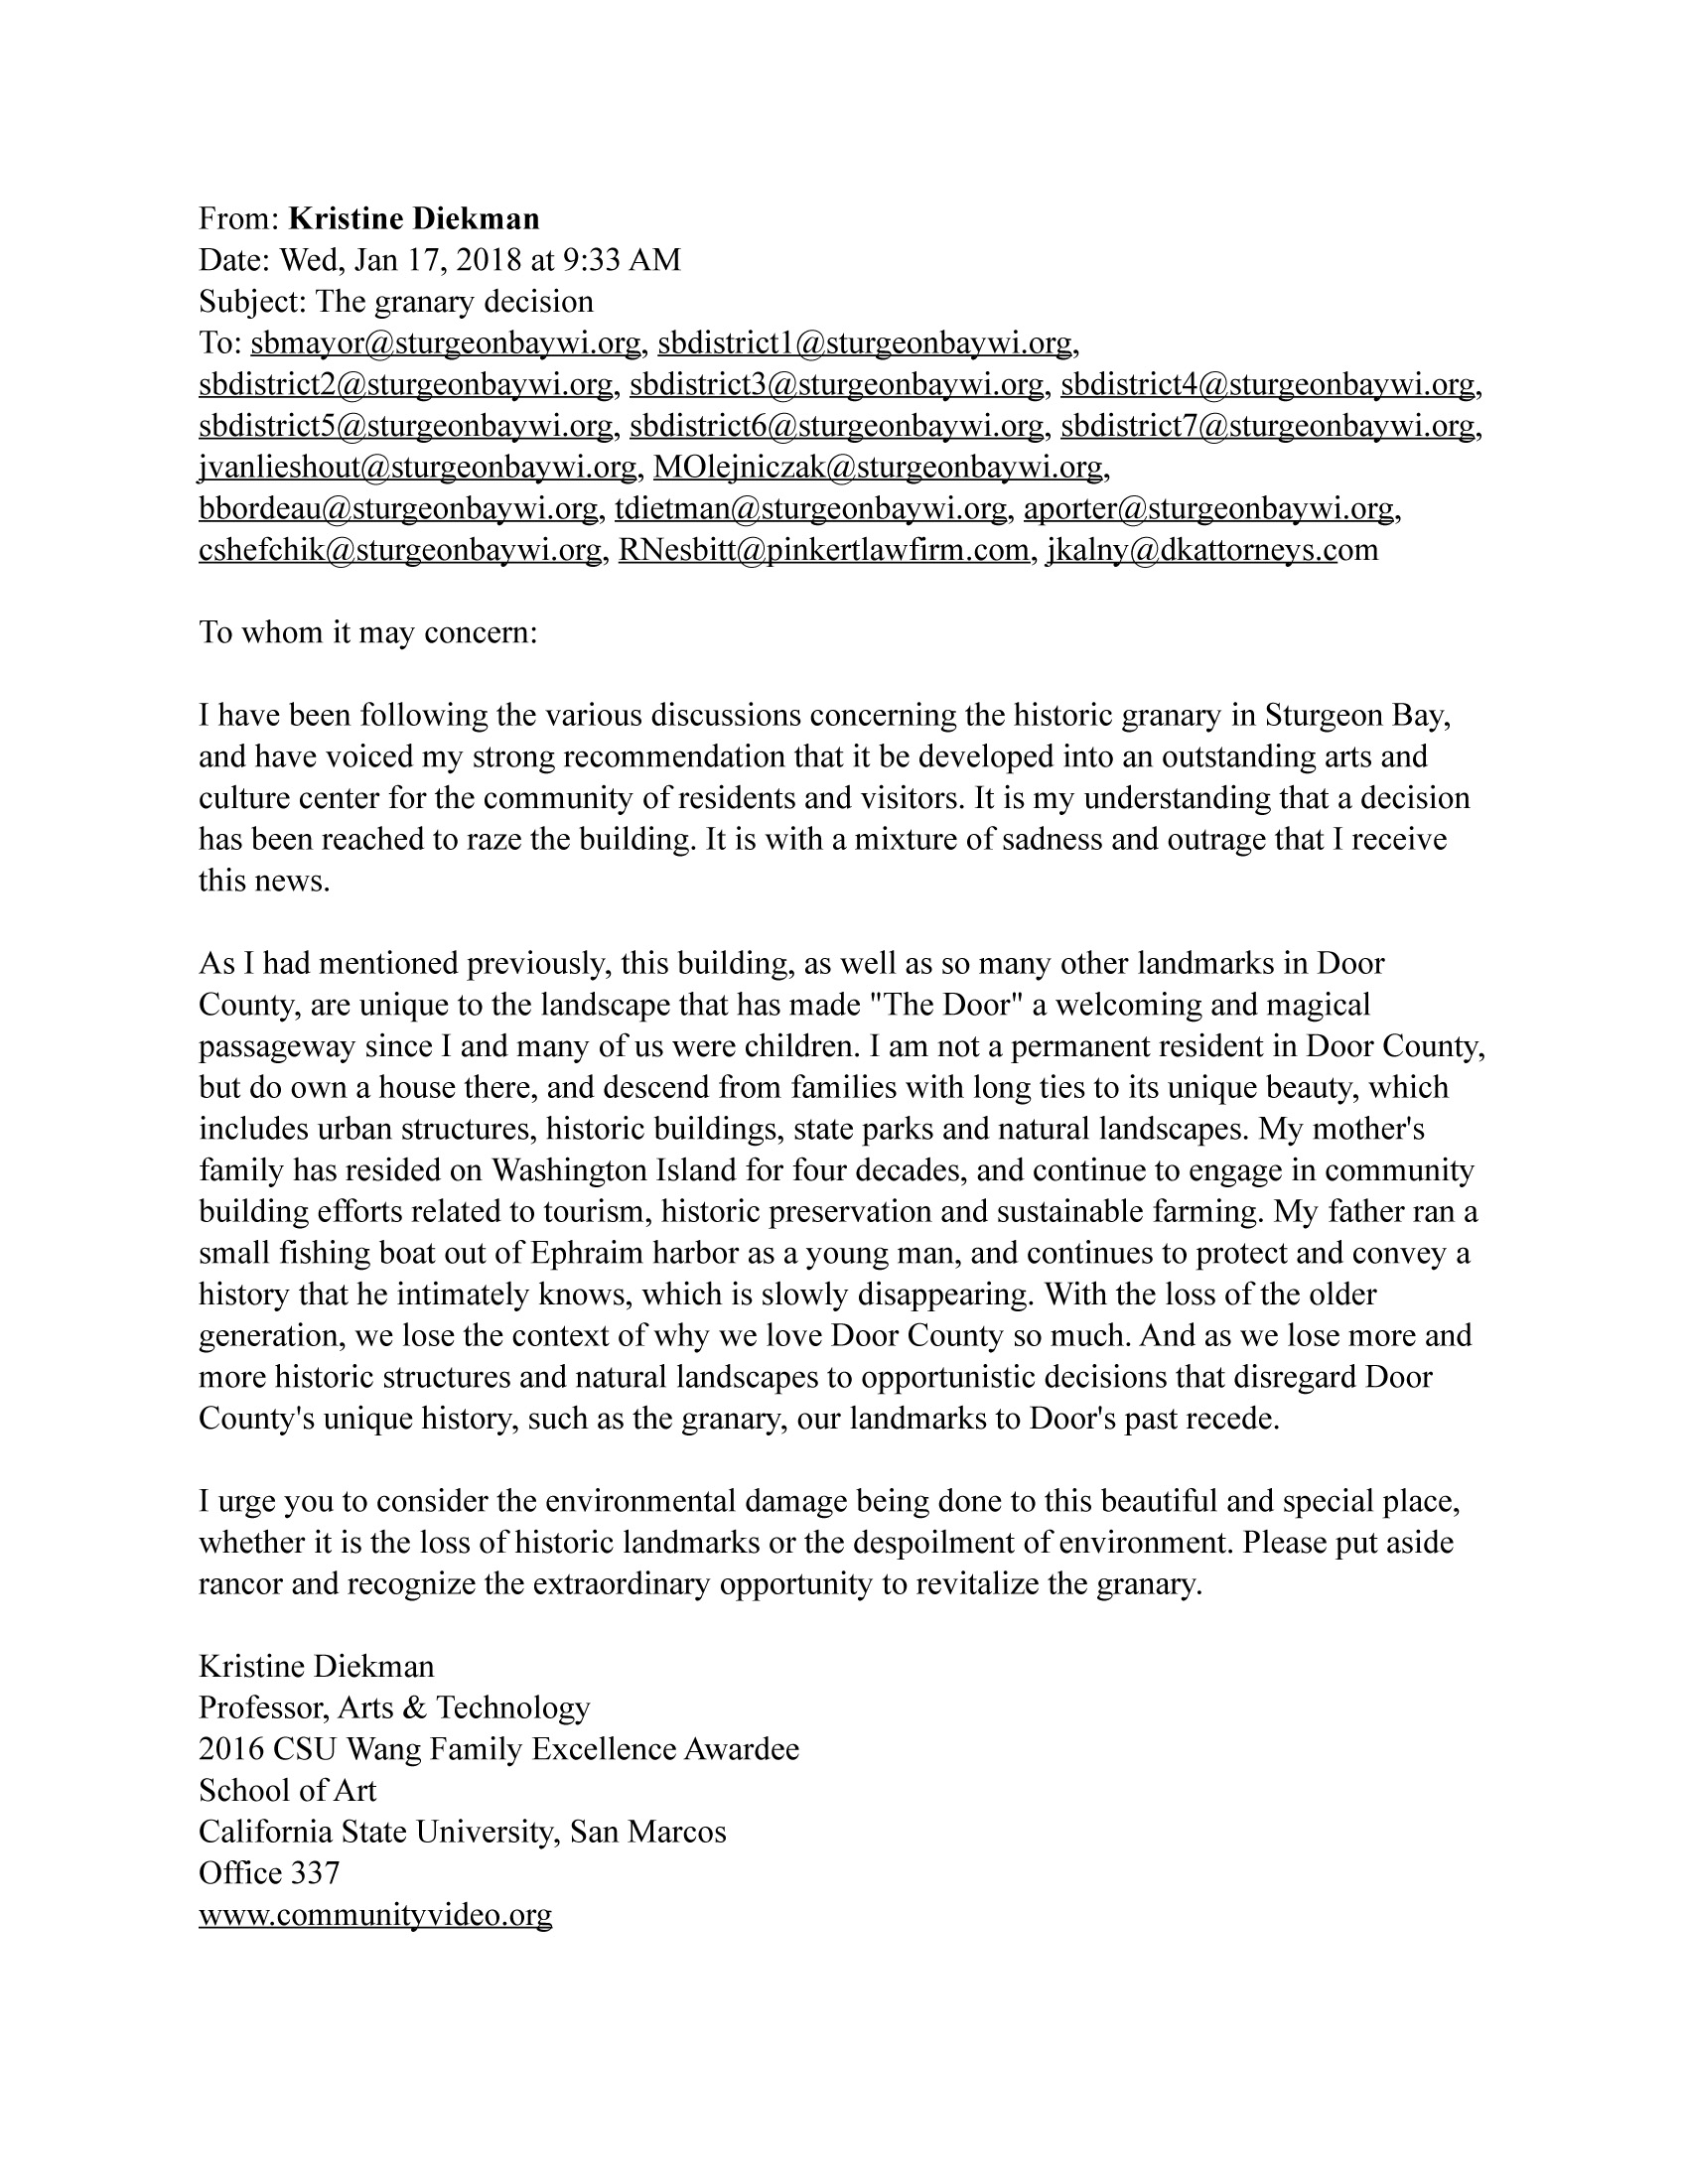 Historic granary center line community forum letter in alternate format madrichimfo Image collections